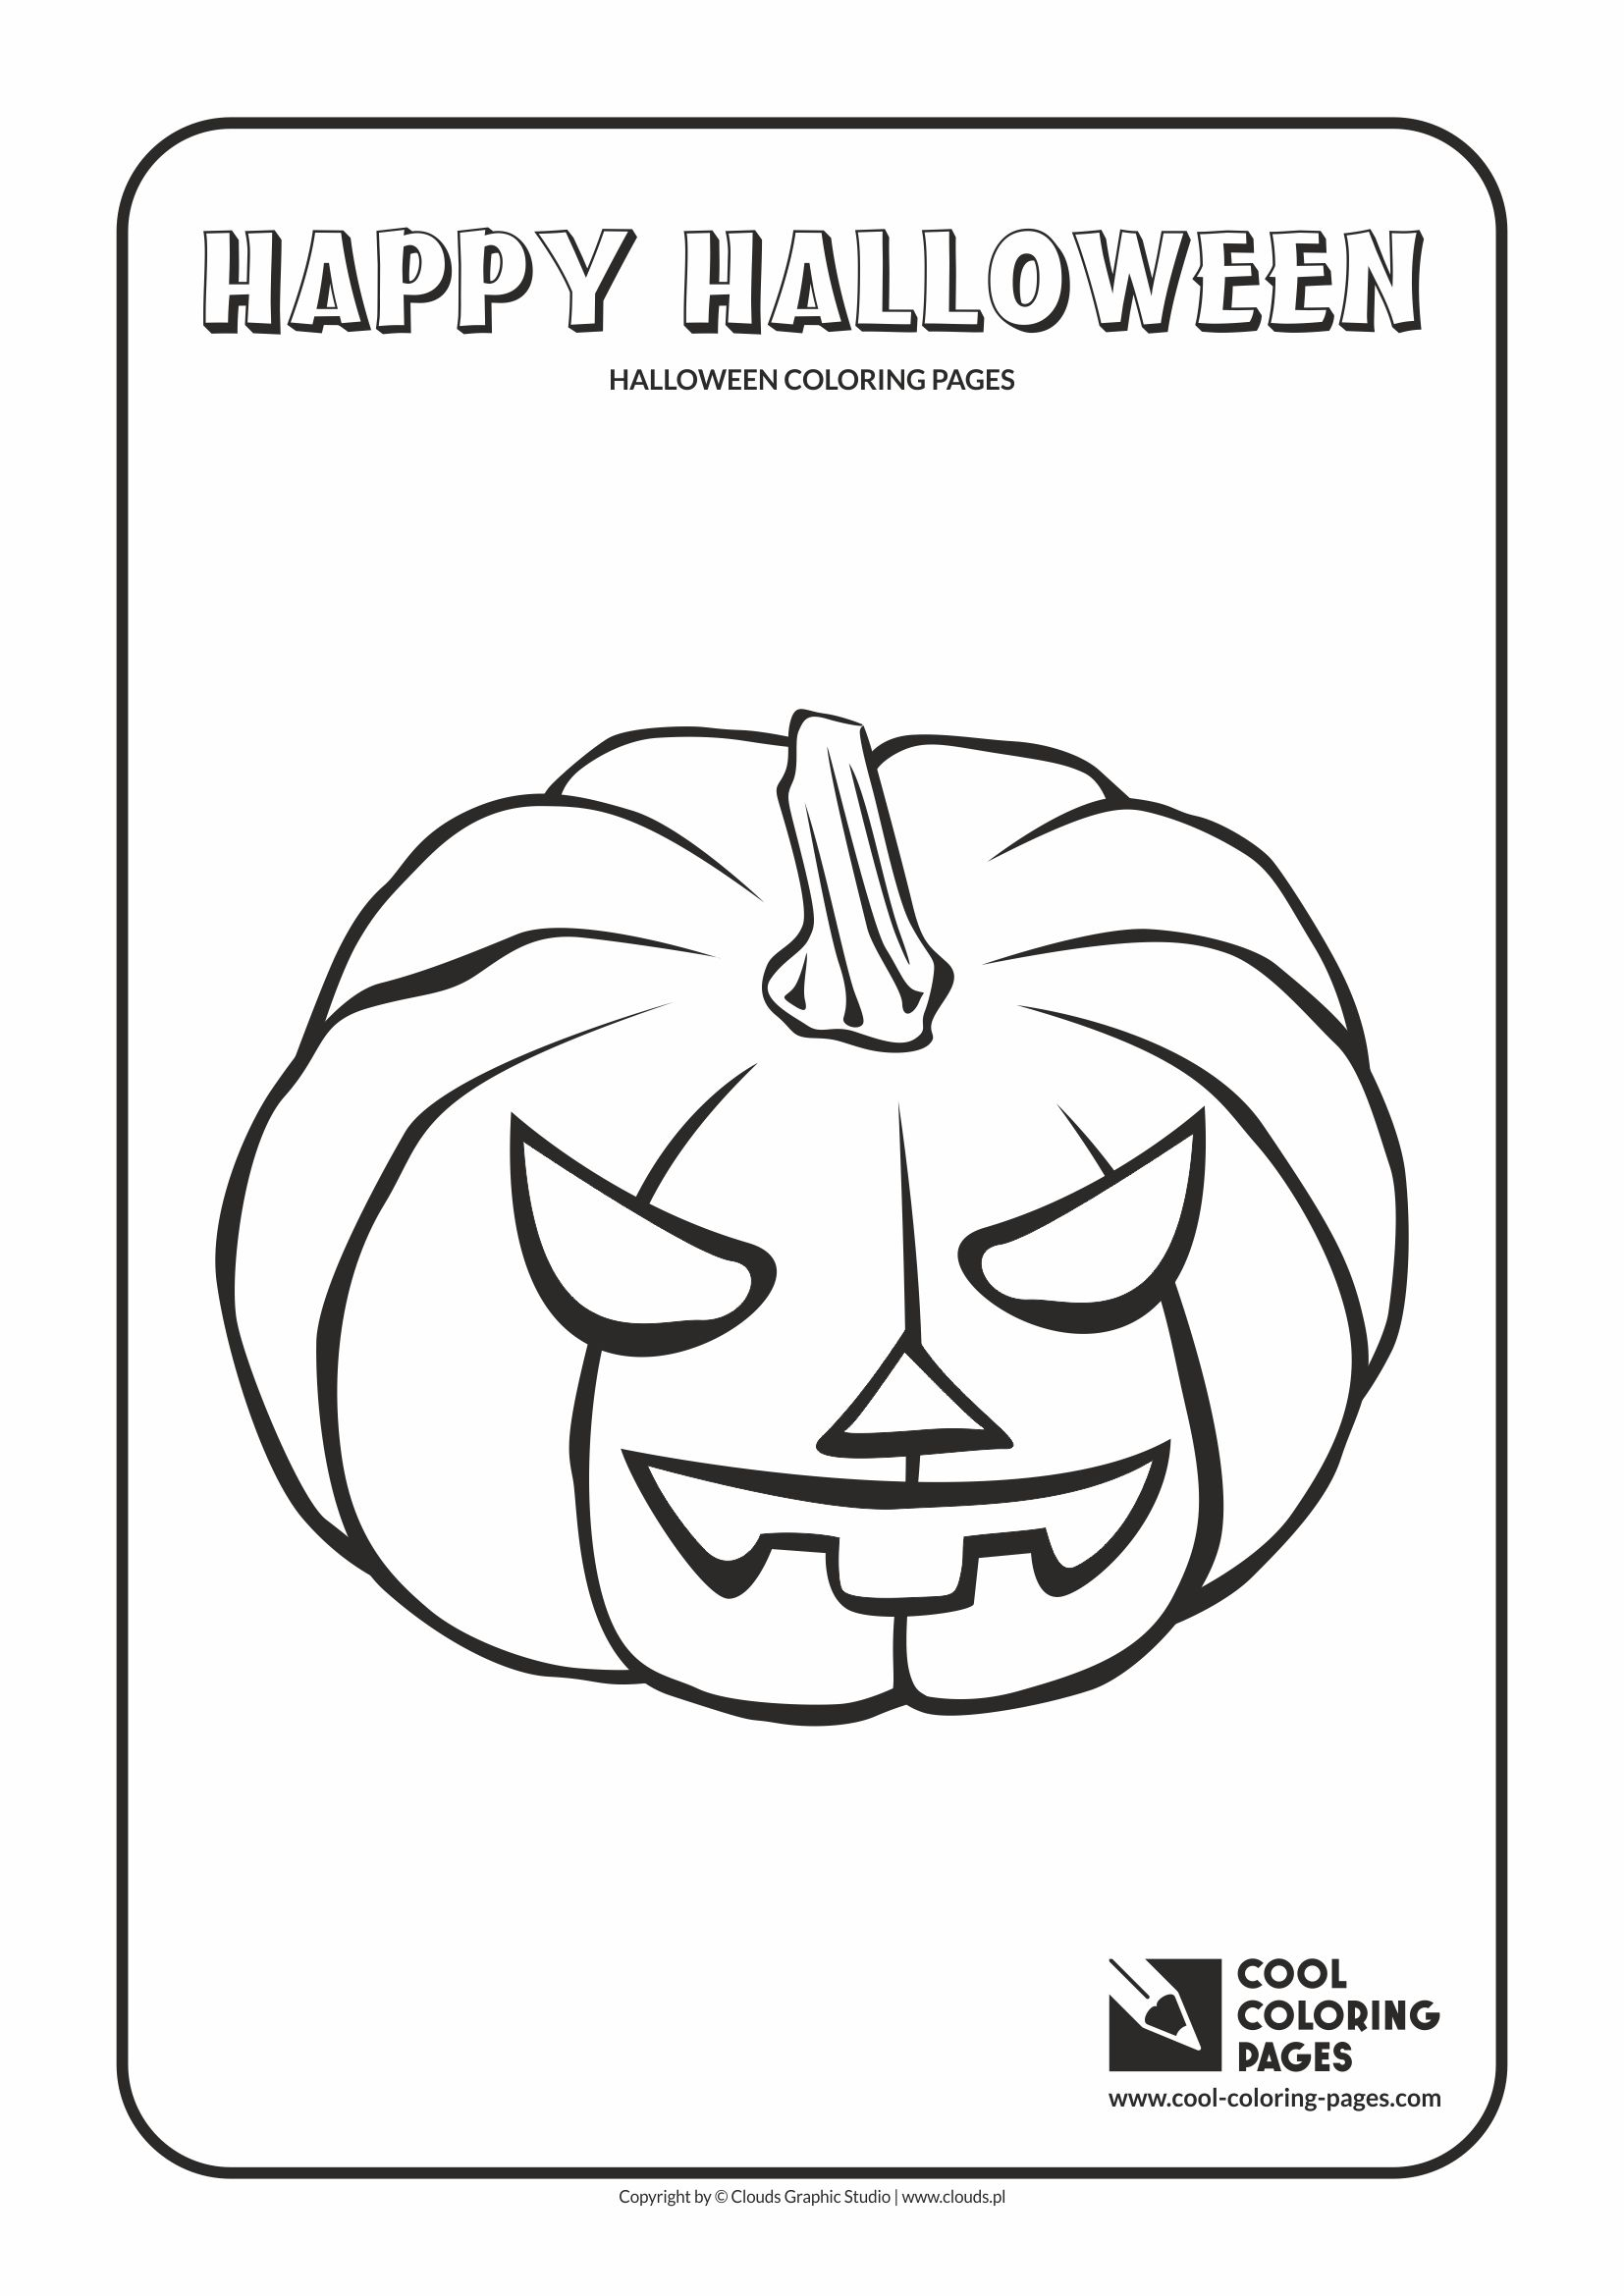 Cool Coloring Pages - Holidays / Halloween pumpkin no 3 / Coloring page with Halloween pumpkin no 3